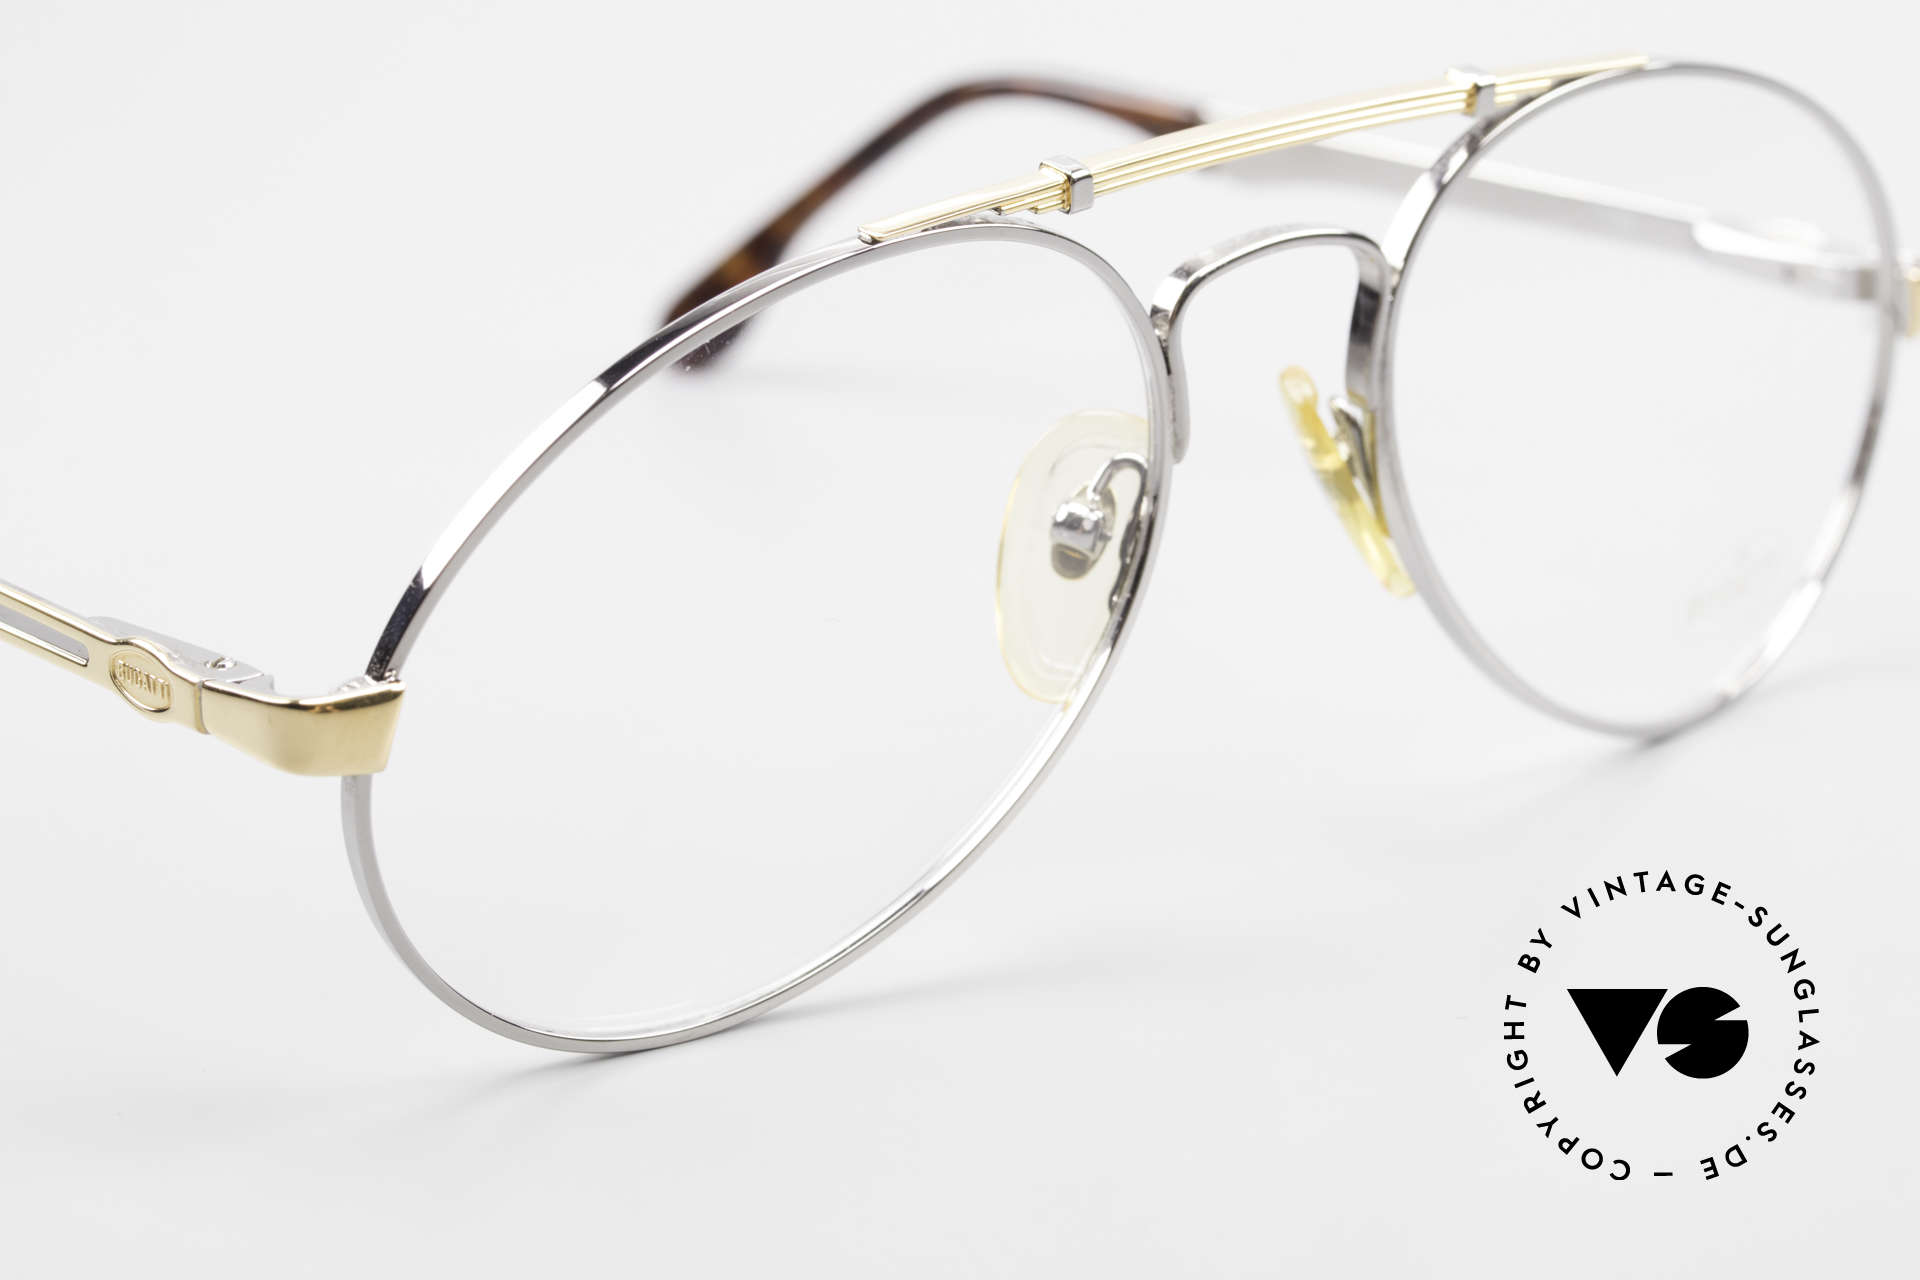 Bugatti 11946 Large 80's Luxury Eyeglasses, a very noble unworn model (with orig. packing), Made for Men